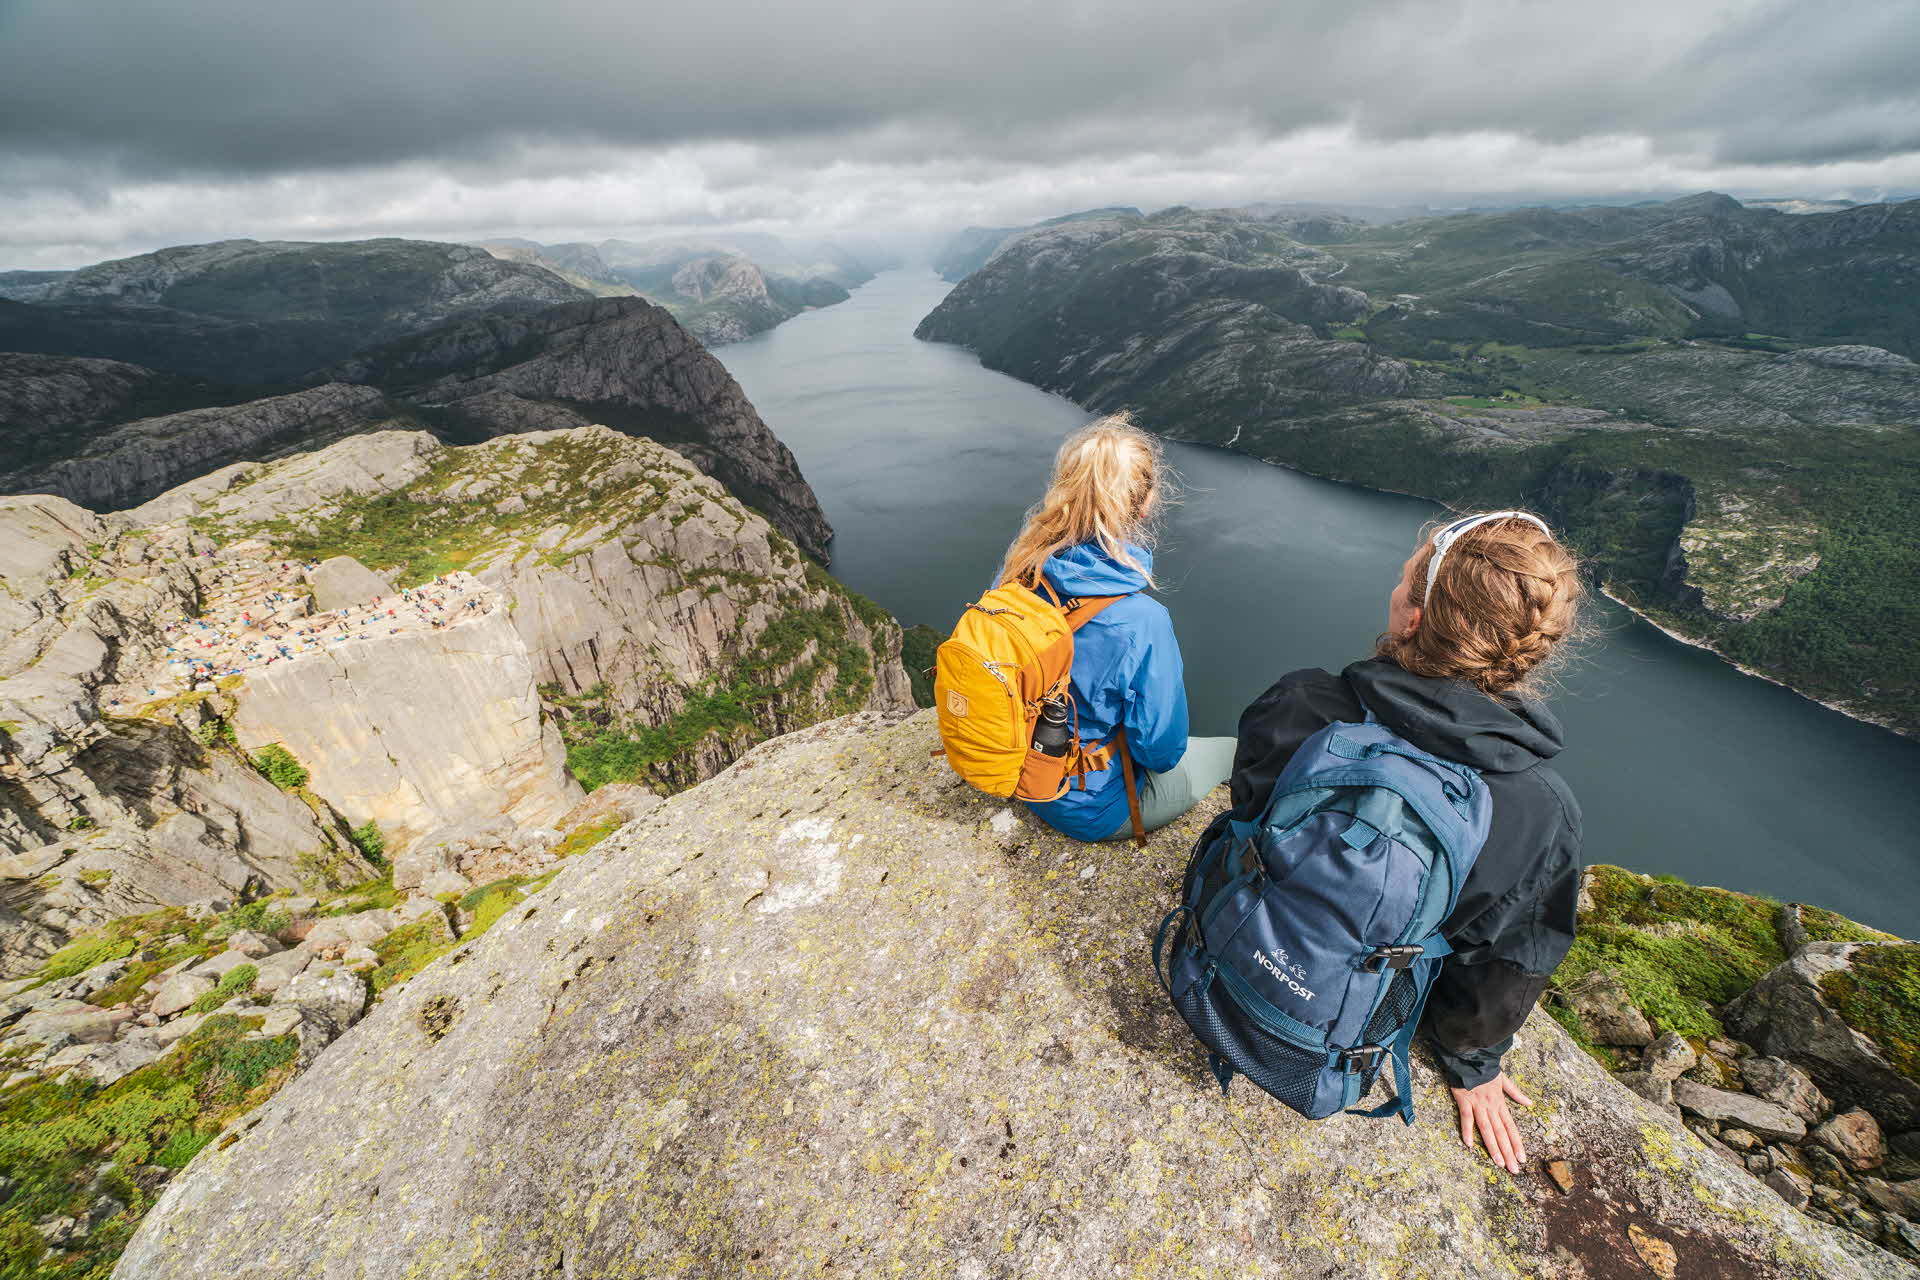 2 women in hiking gear sitting on top of mountain overlooking Lysefjord below on a cloudy day